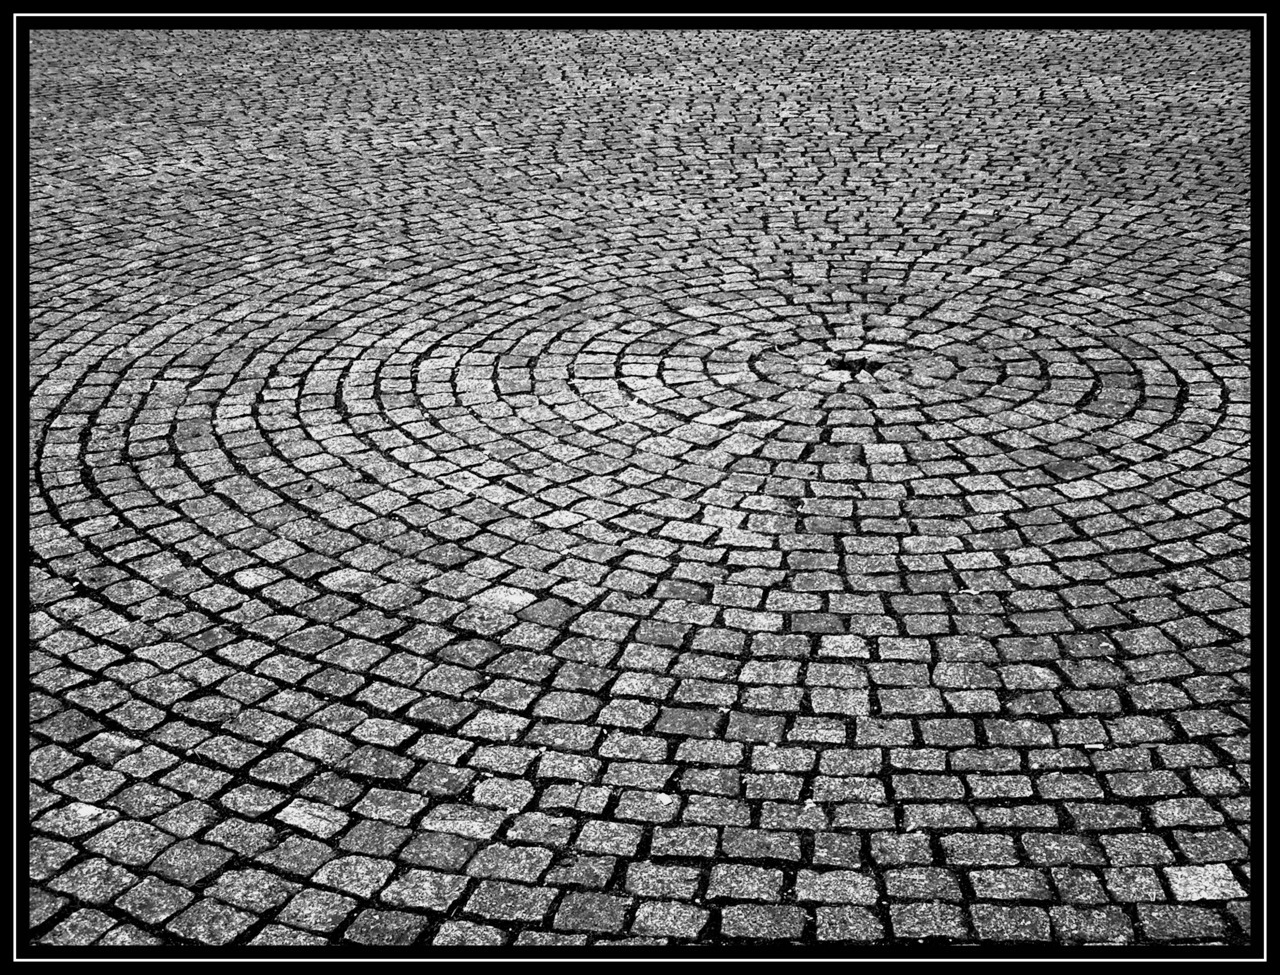 Cobblestone in Berlin http://www.panoramio.com/photo/24545298